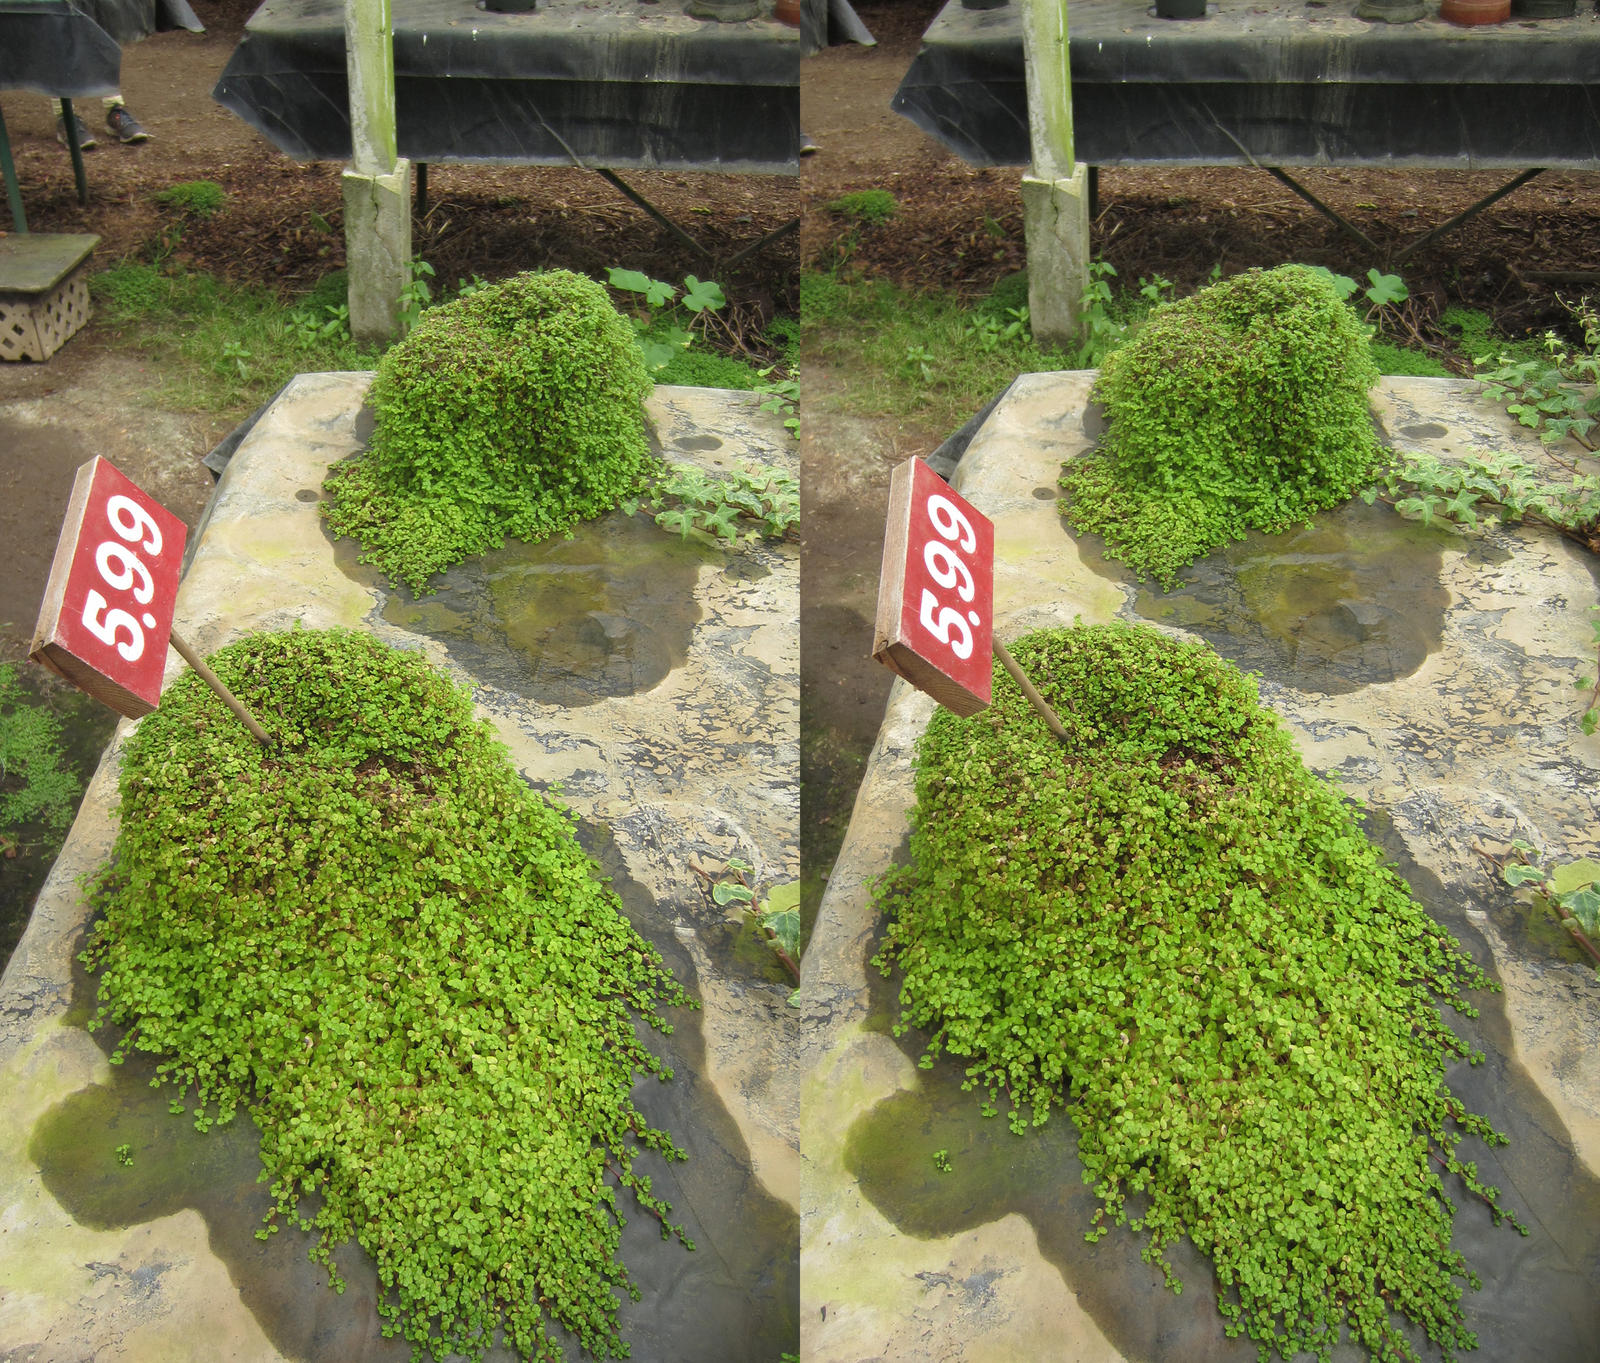 Stereograph - Green Lumps by alanbecker